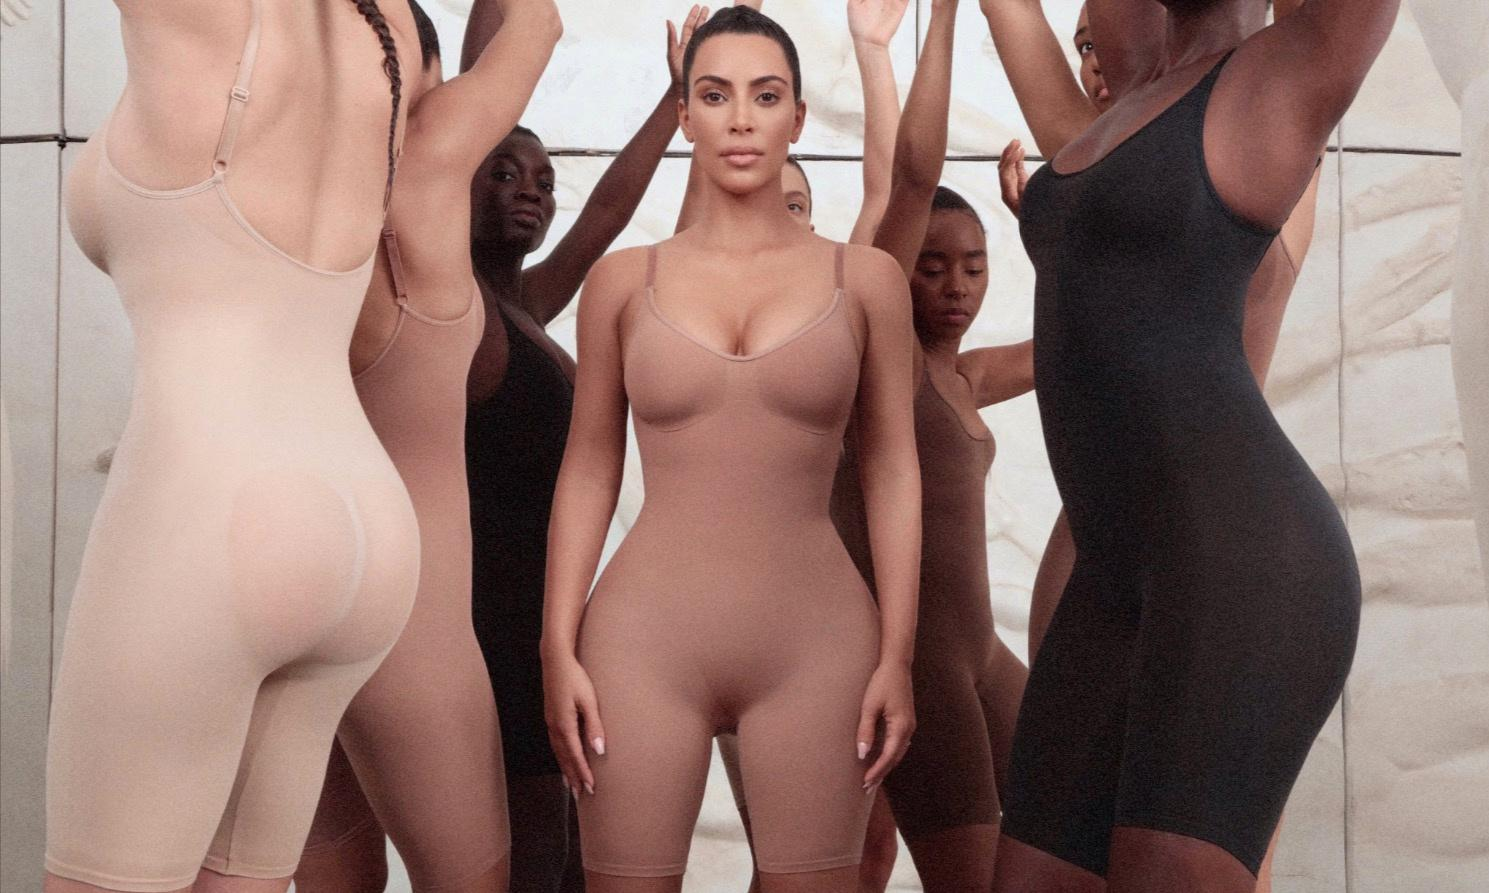 Forget the rebrand – Kim Kardashian West should ditch her shapewear range entirely